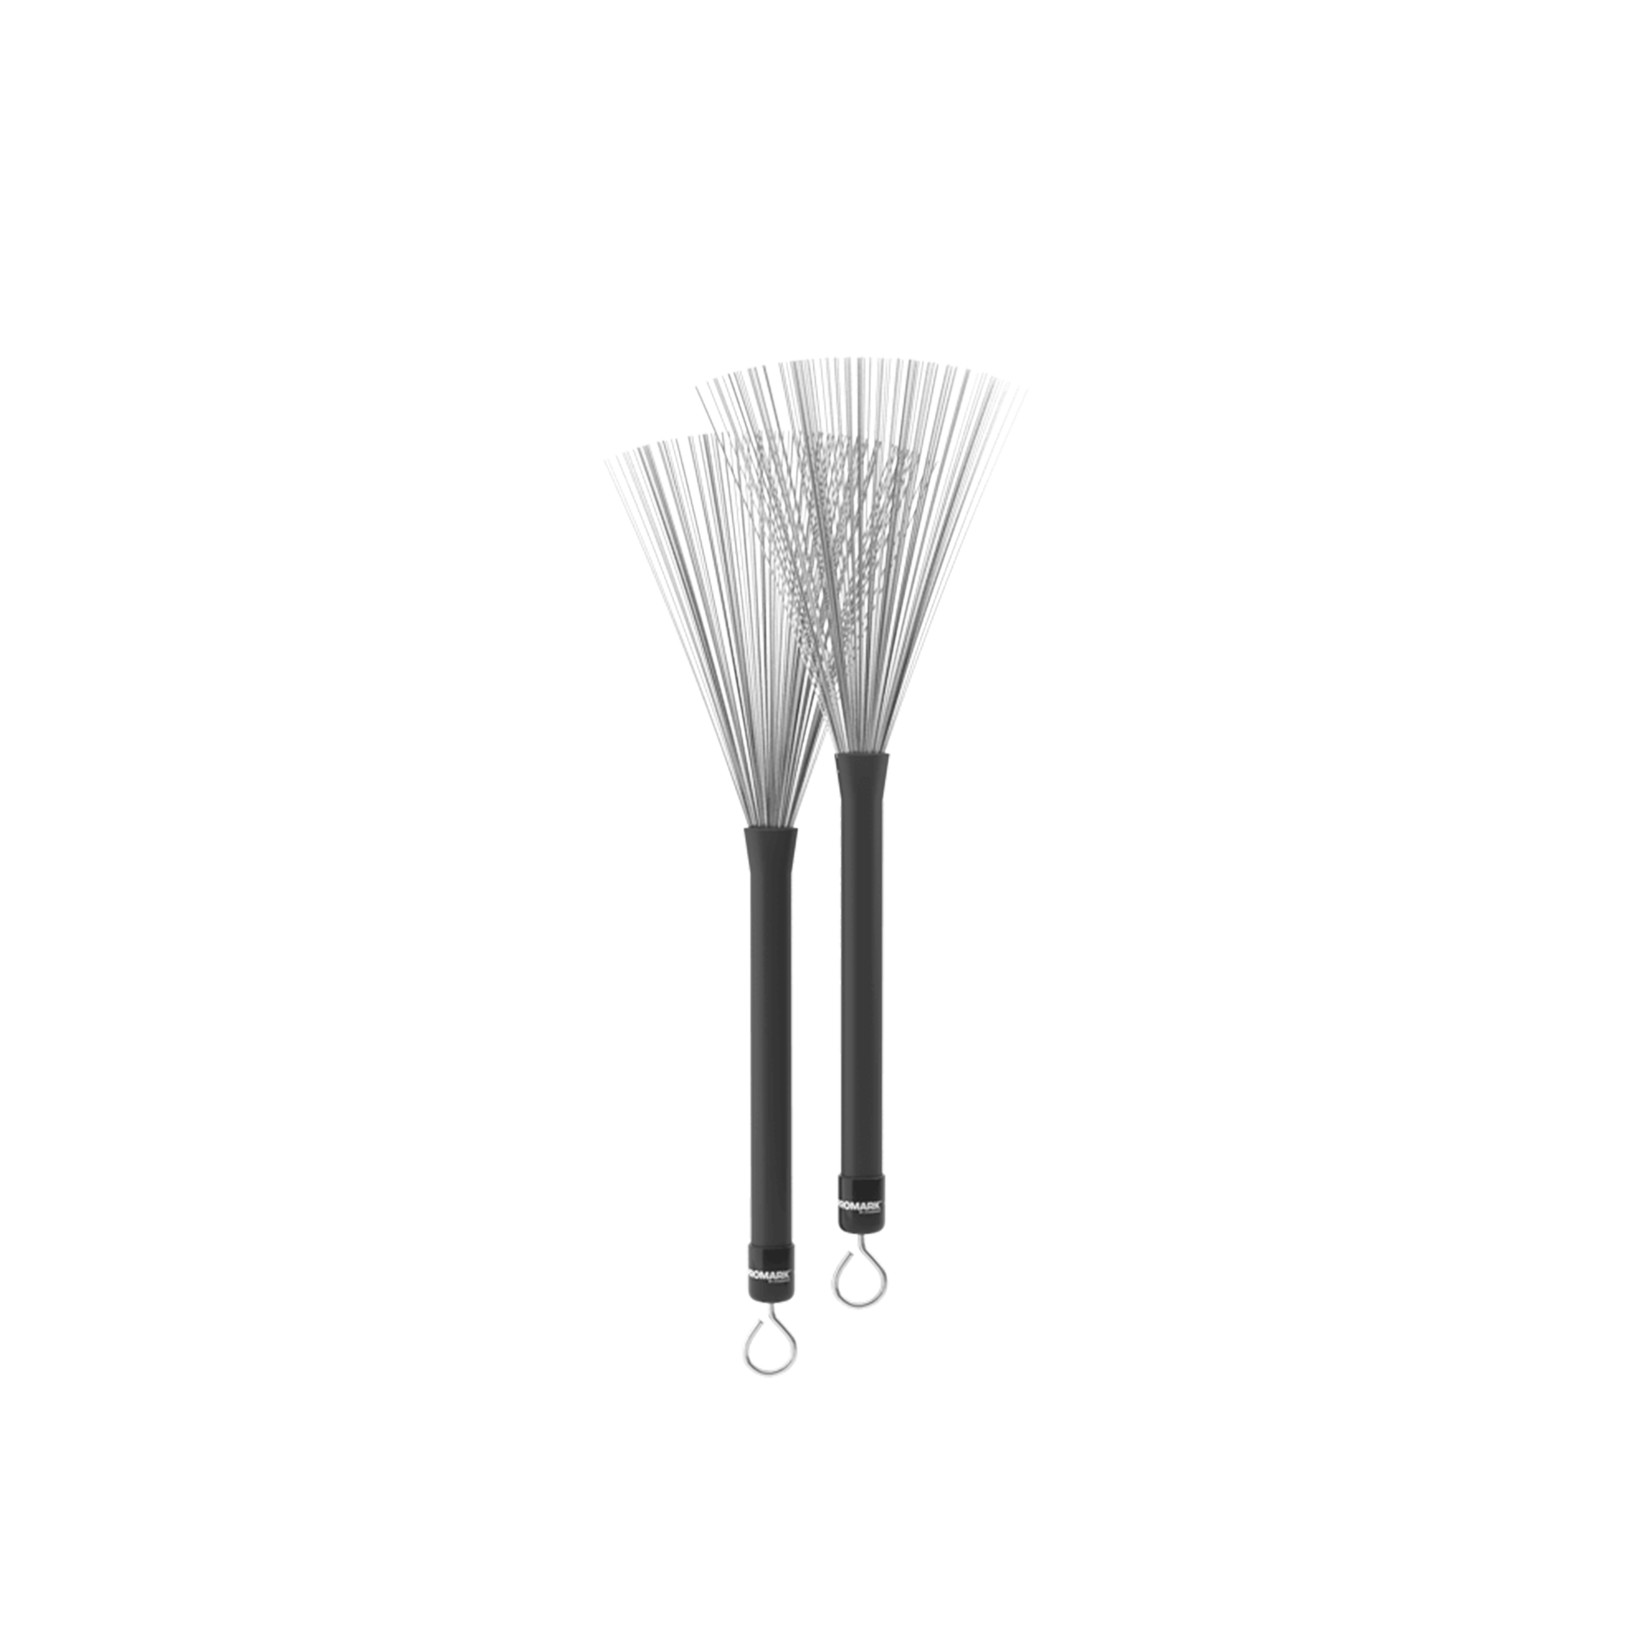 Promark Promark Telescoping Wire Brush - Jazz